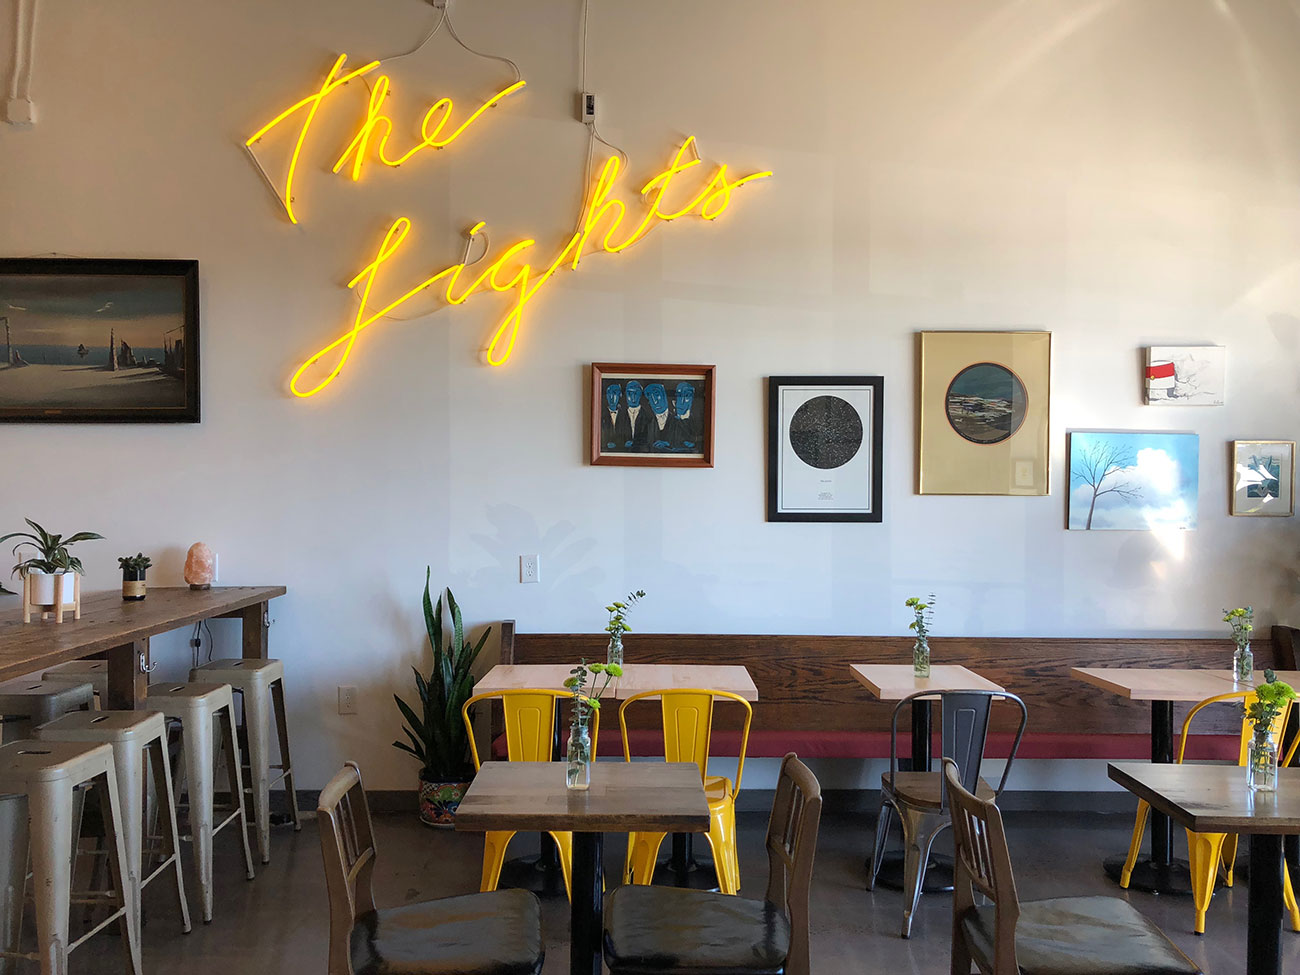 The rise of the Instagram restaurant — how the photo-sharing app reshapes physical spaces